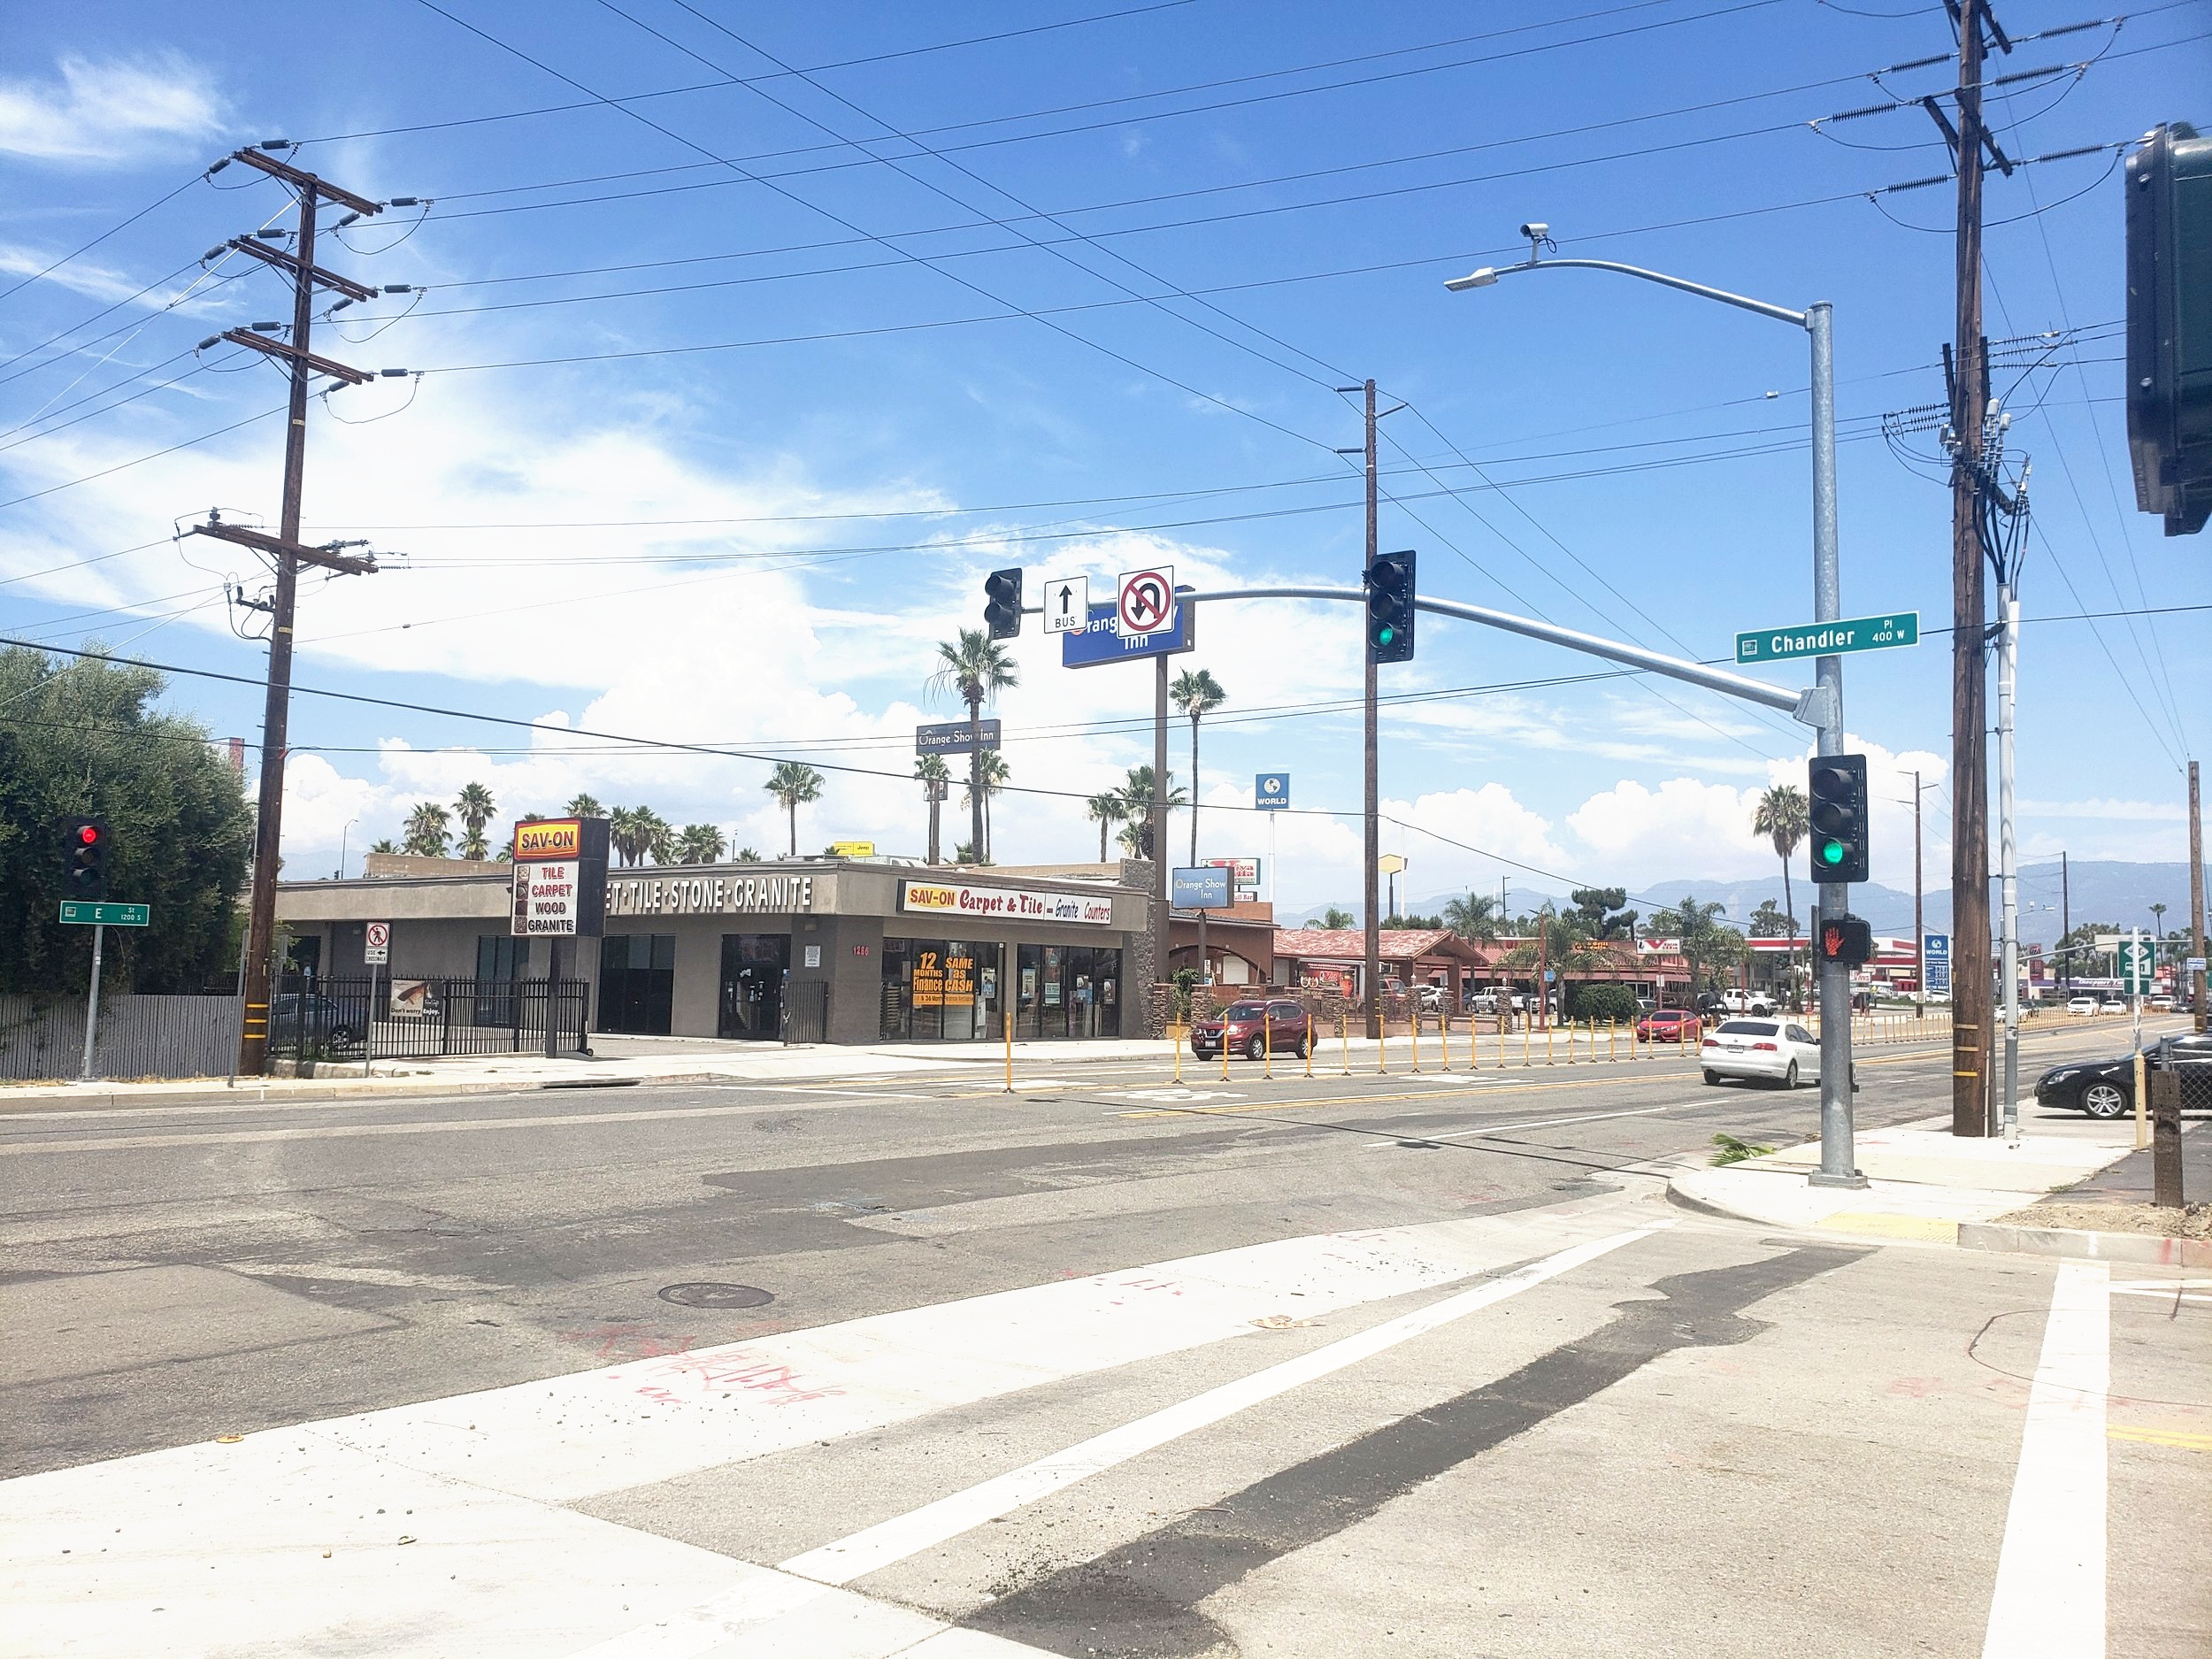 Traffic Signal Design & Installation - San Bernardino Municipal Water Department